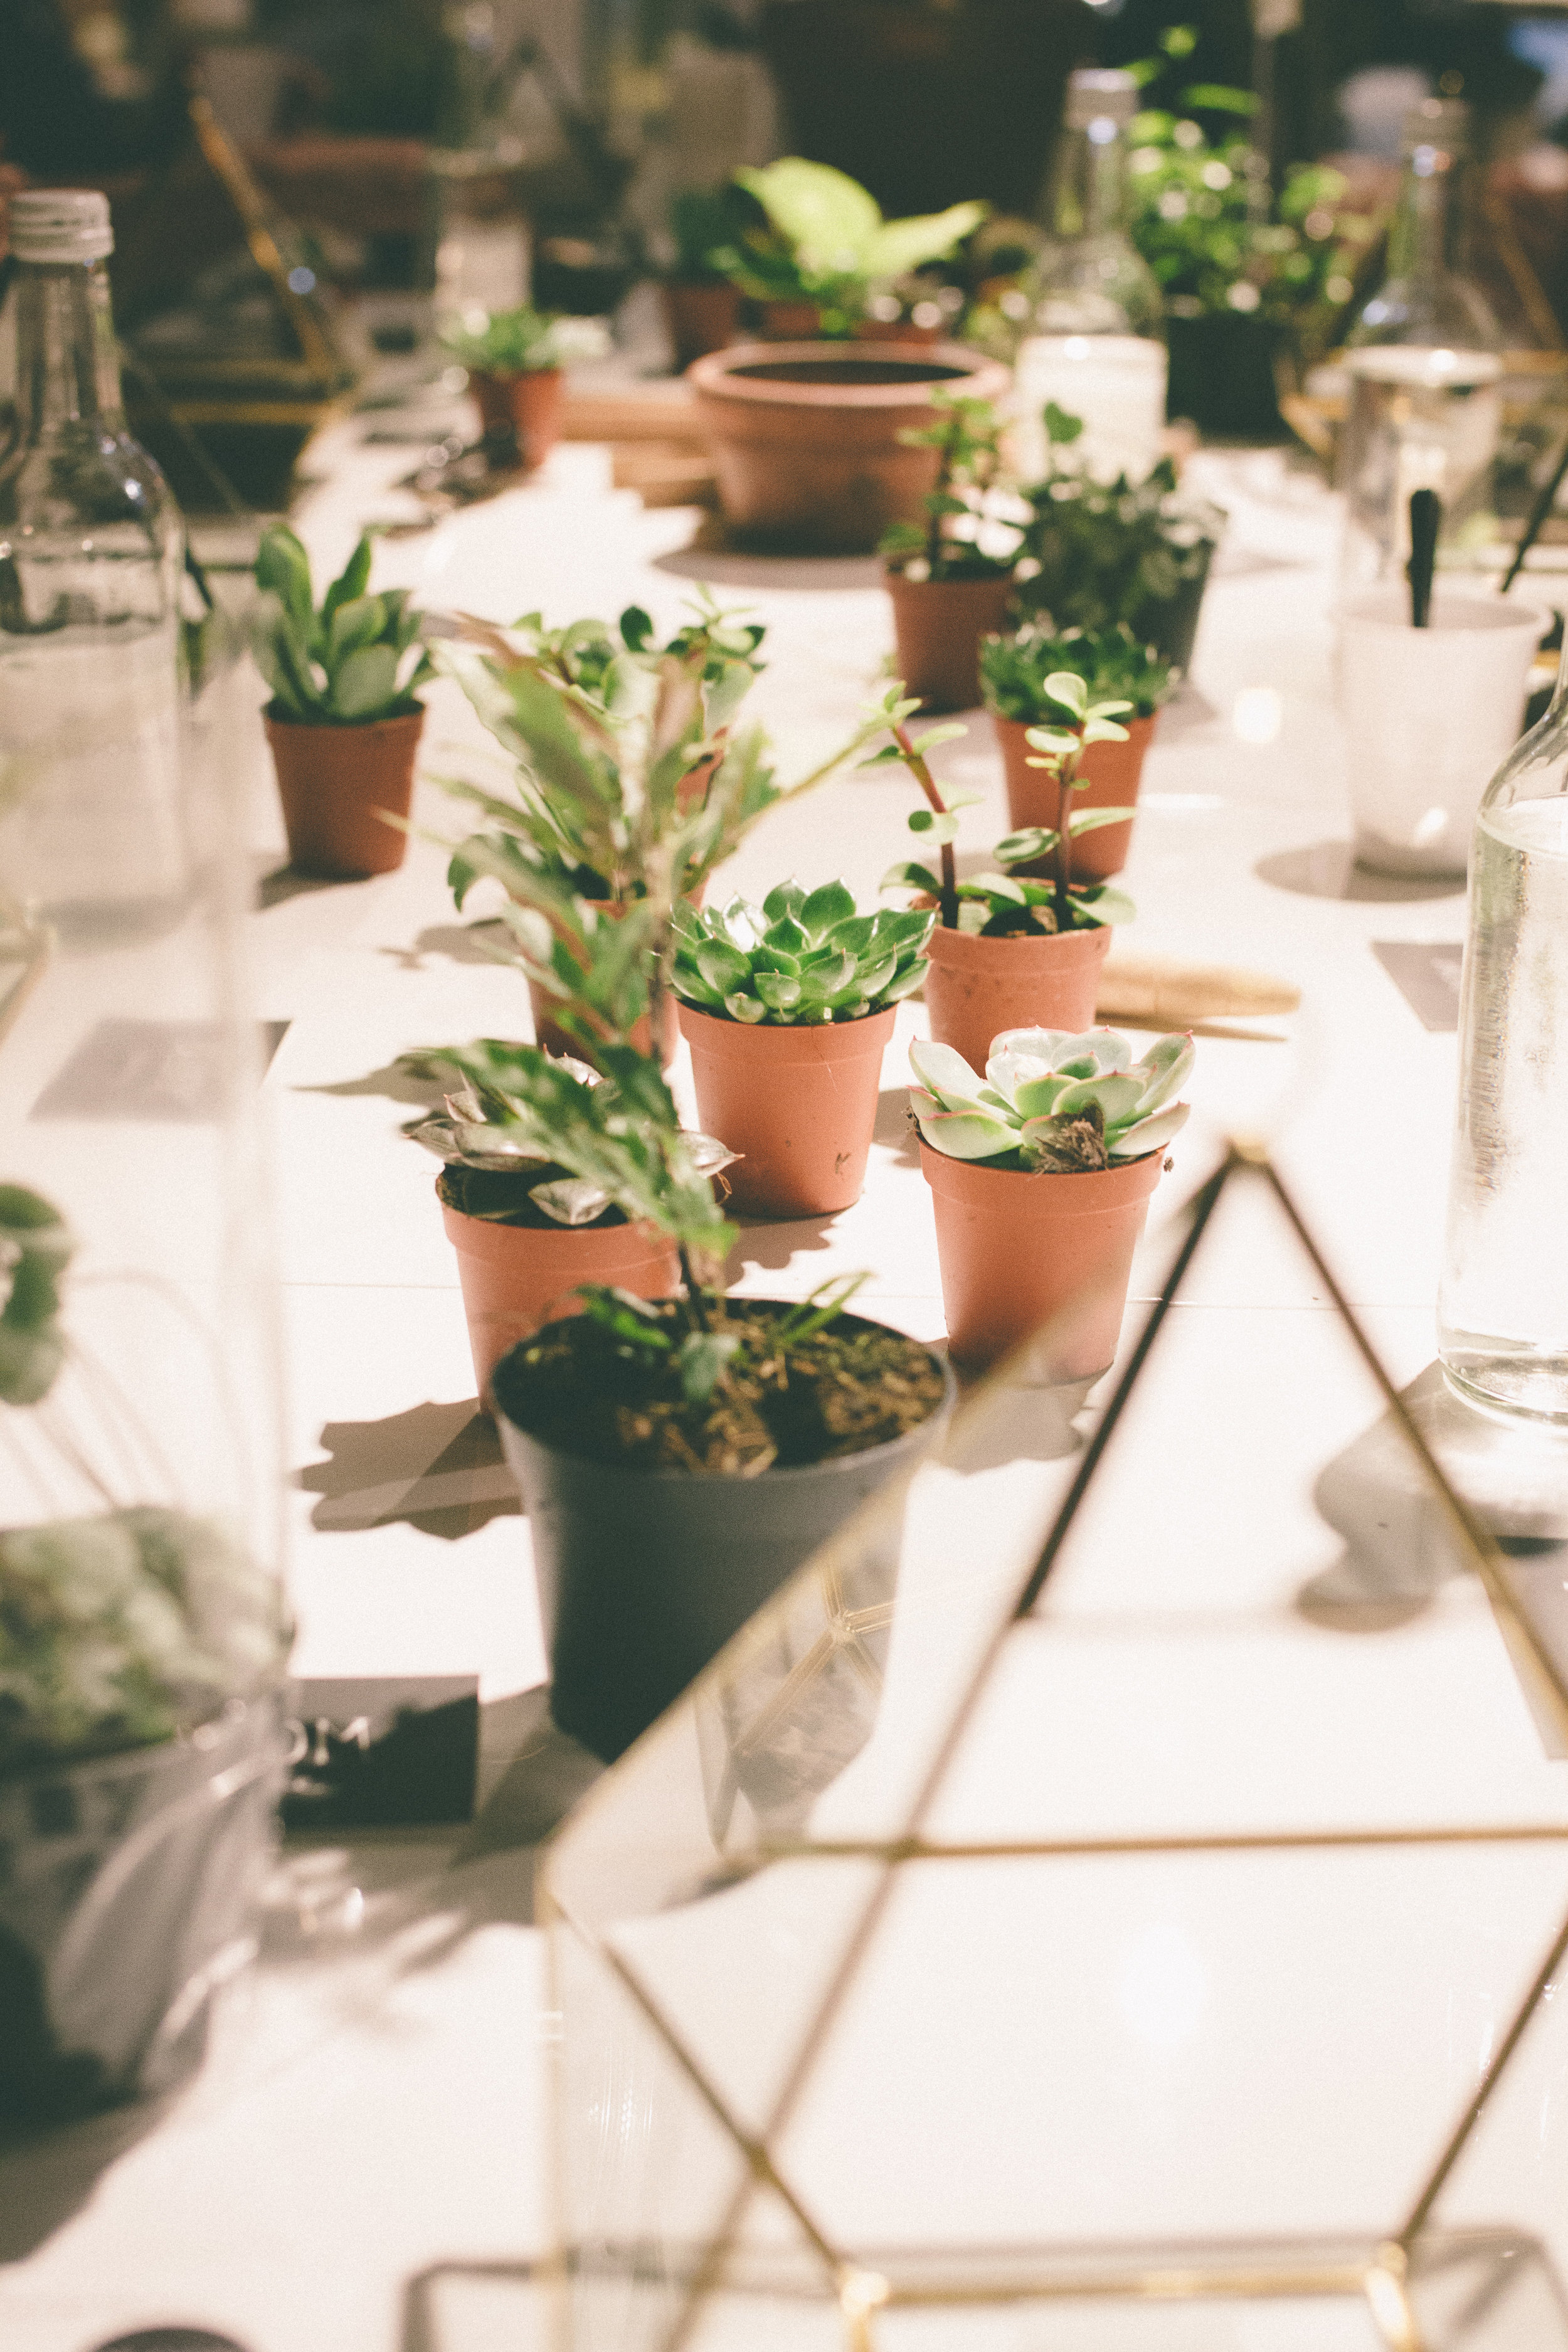 Terrarium Workshop - Bloom Collective | Carolyn Carter Blog